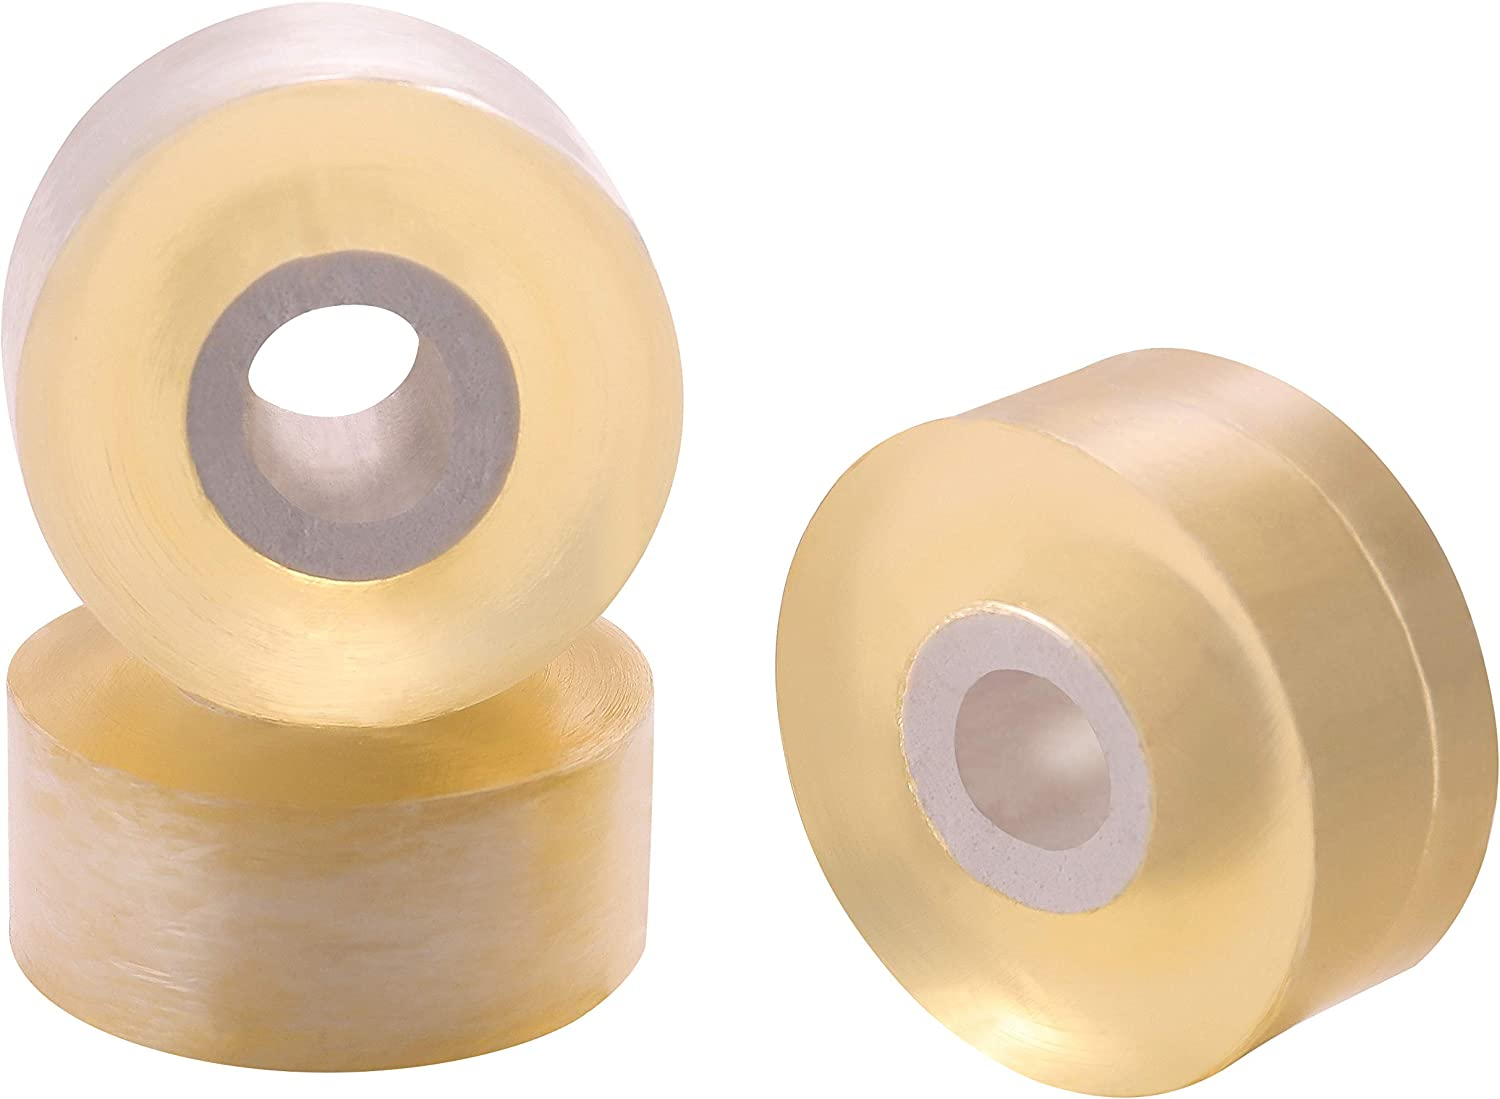 NAYE Grafting Tape Stretchable Clear Floristry Film,3 Roll